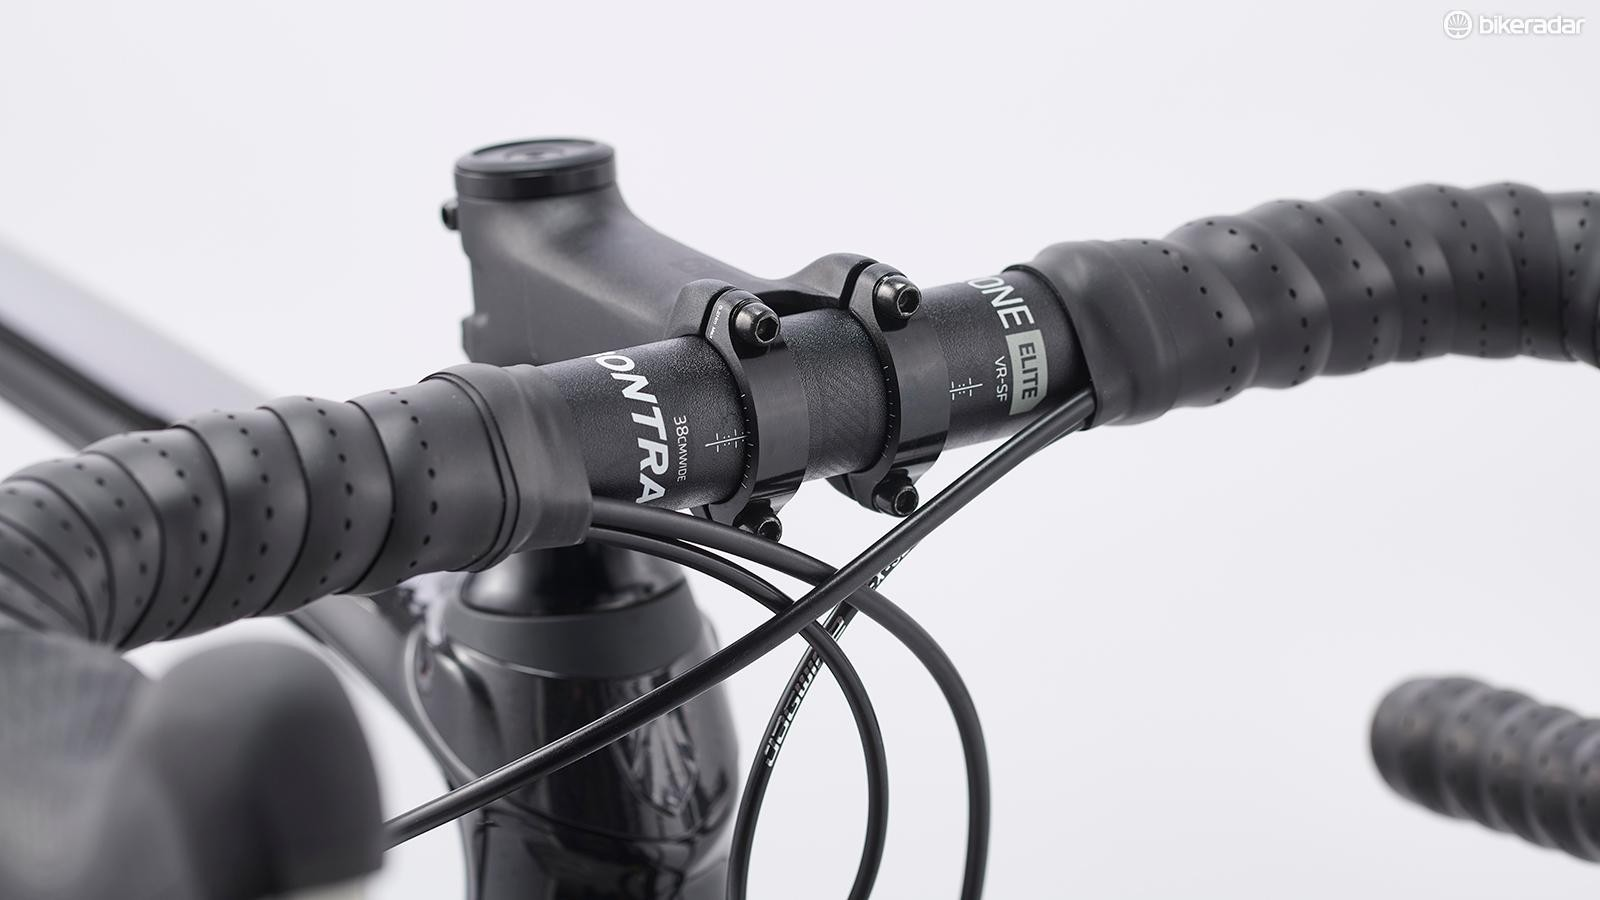 Foam pads built into the handlebars help to absorb road chatter